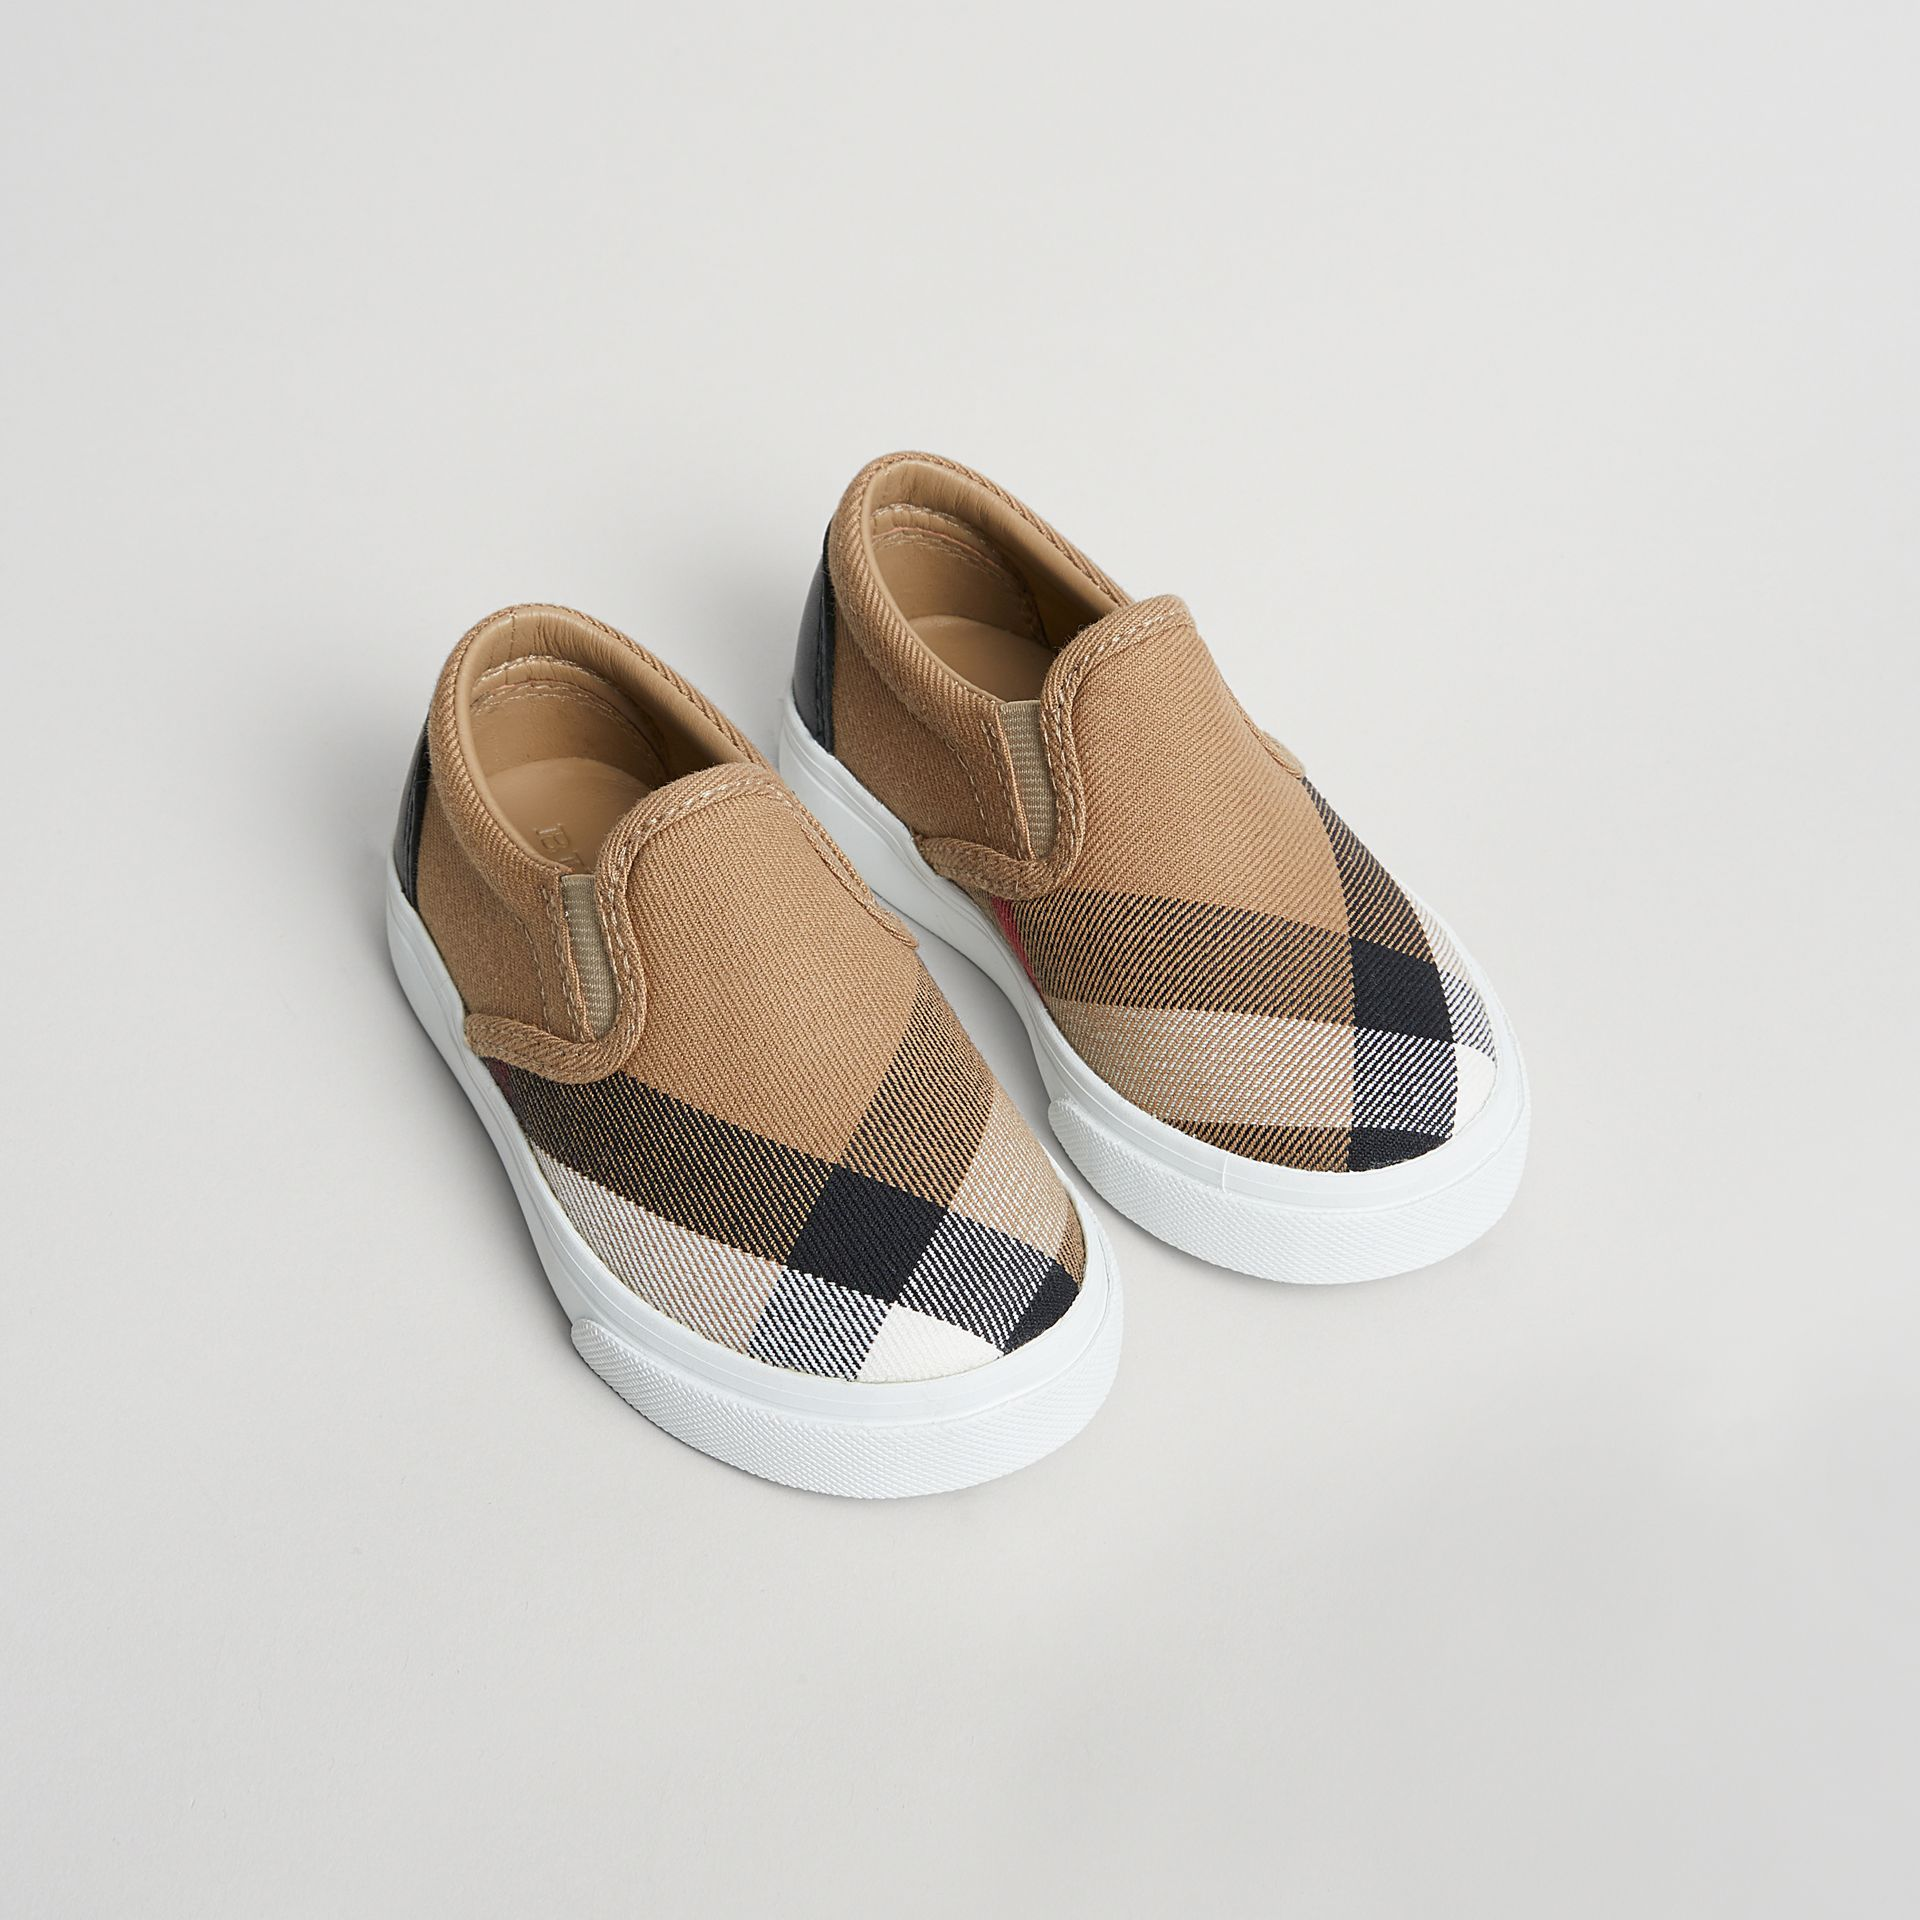 House Check and Leather Slip-on Sneakers in Classic/optic White | Burberry Australia - gallery image 0